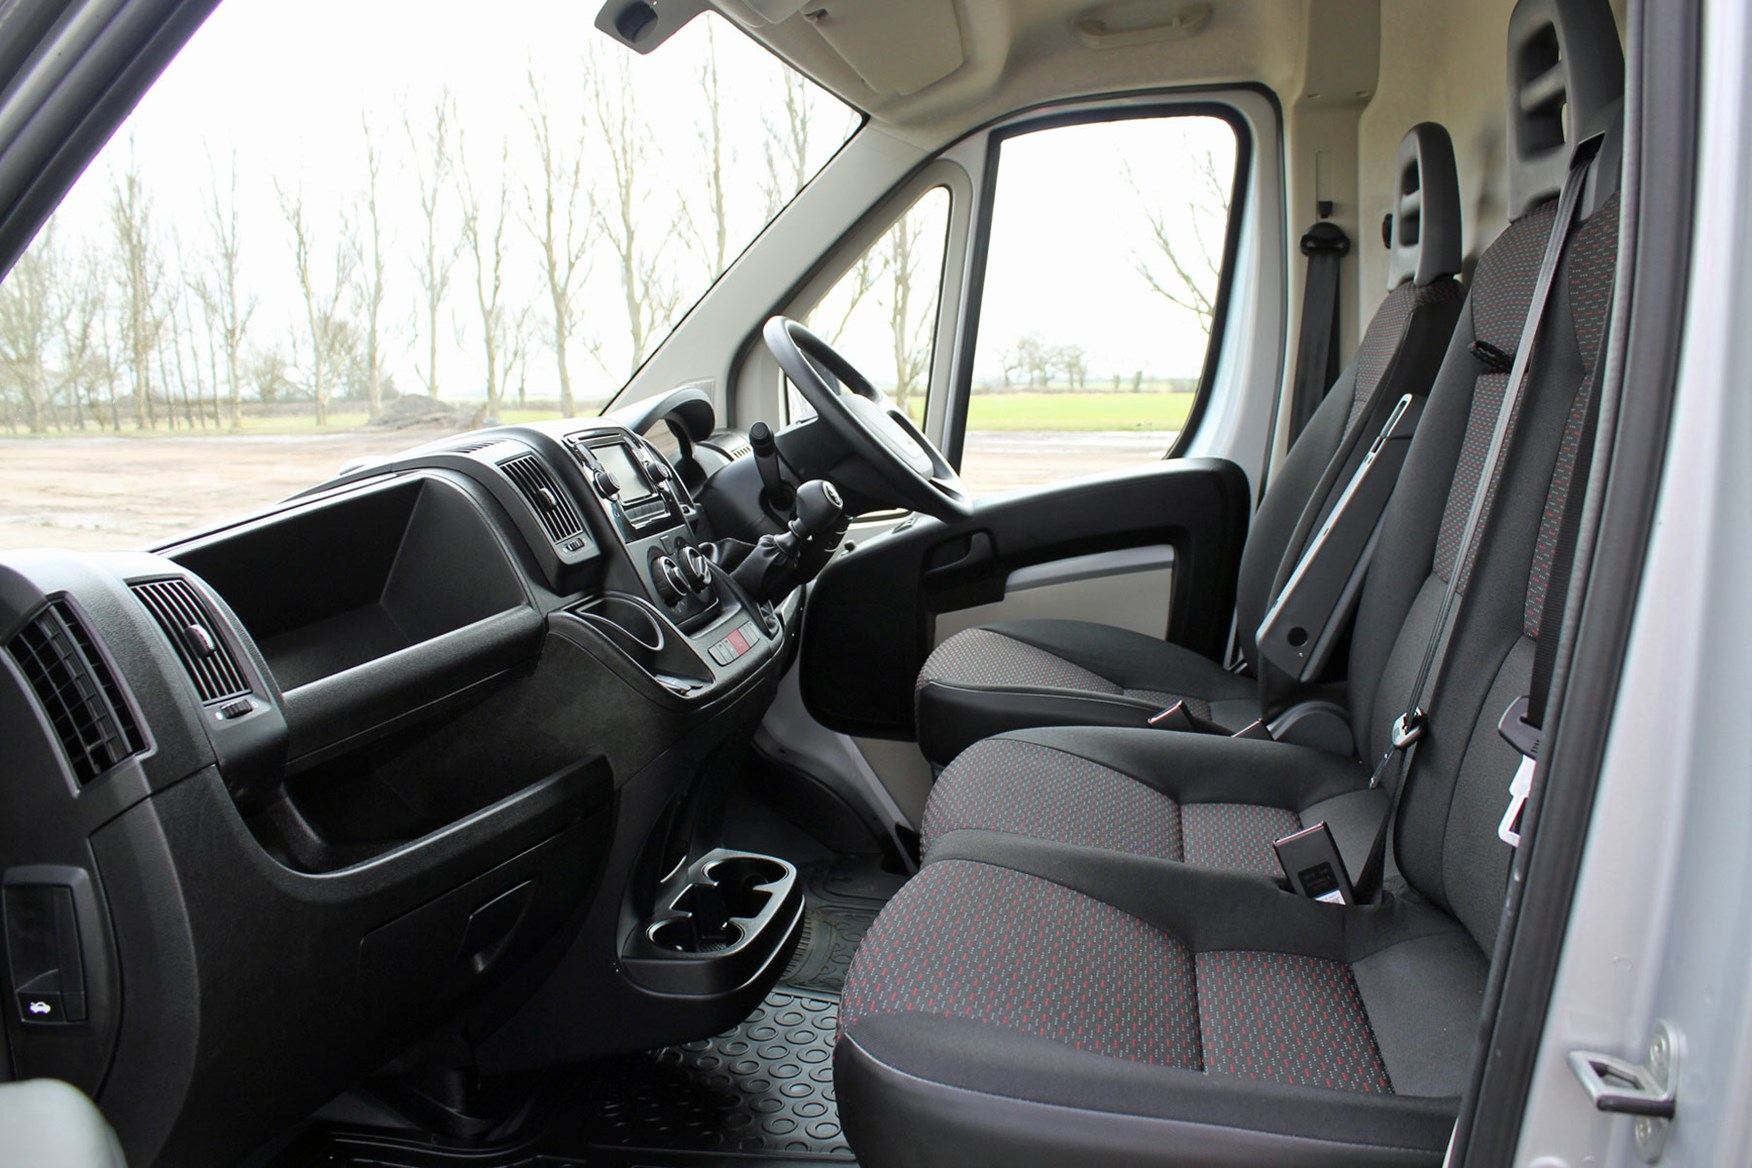 Peugeot Boxer review - cab interior and seats